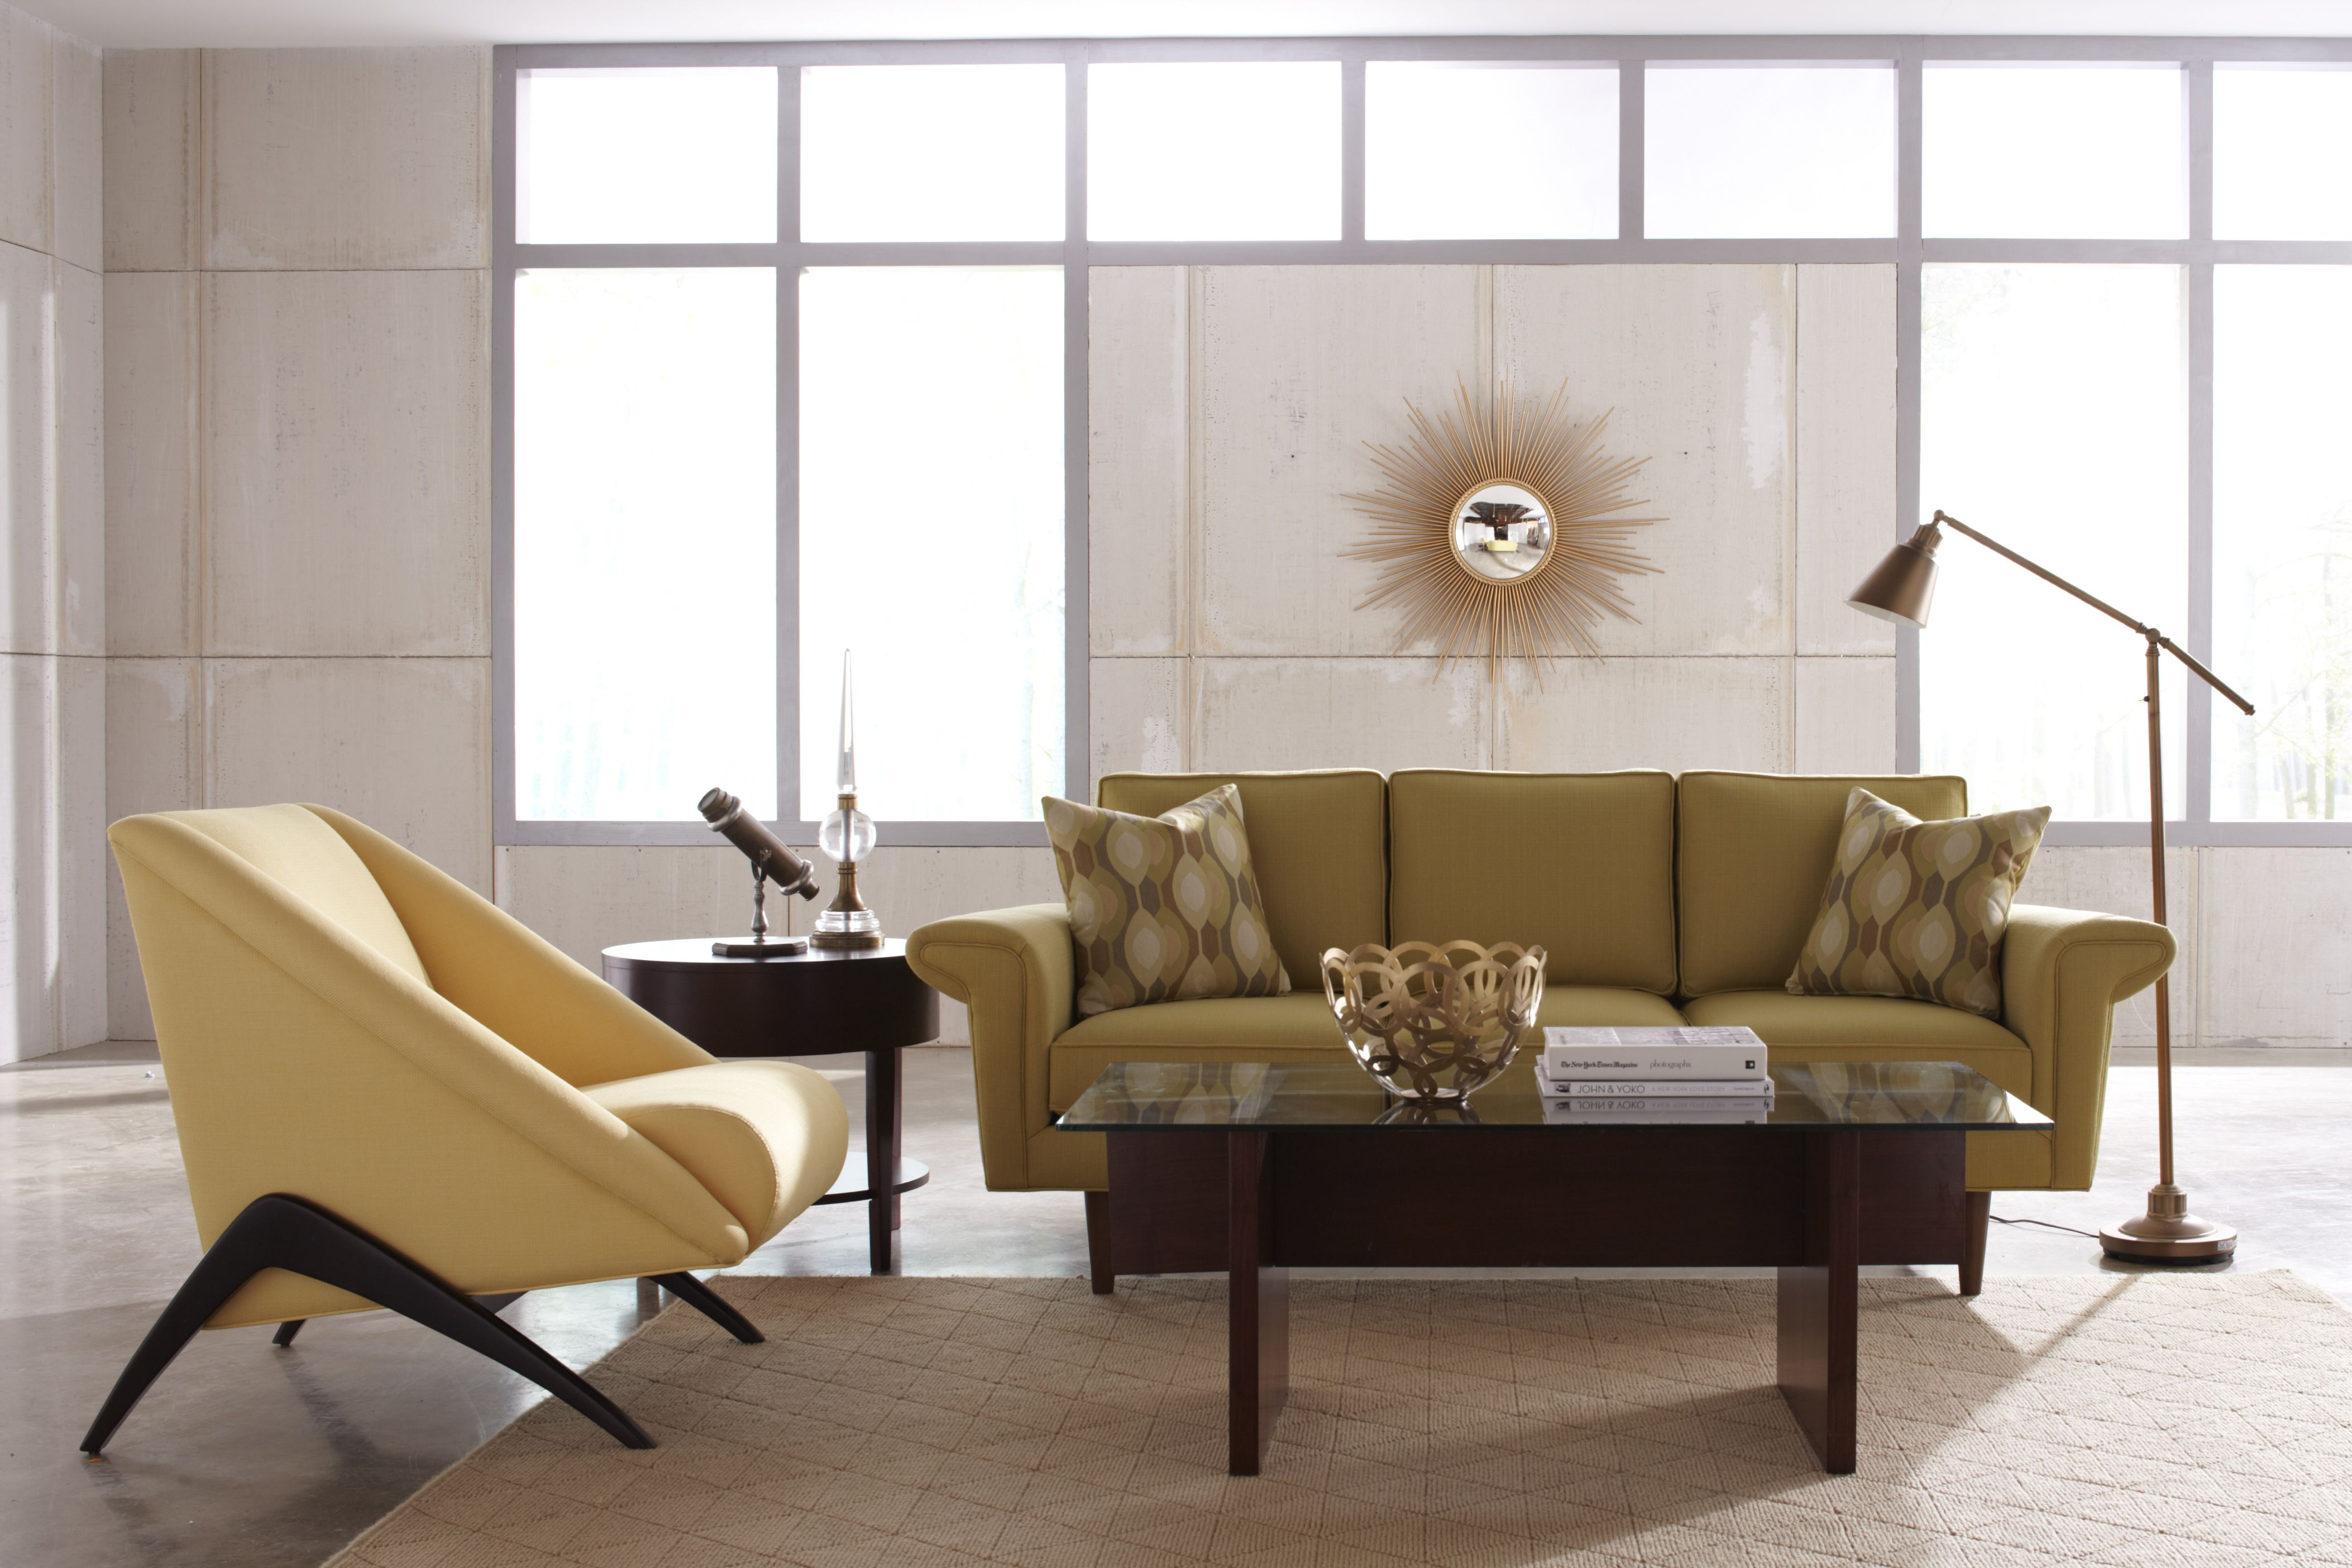 5 Mistakes To Avoid When Buying A New Chair  Interior Design Beauteous Living Room Design Tools Design Inspiration